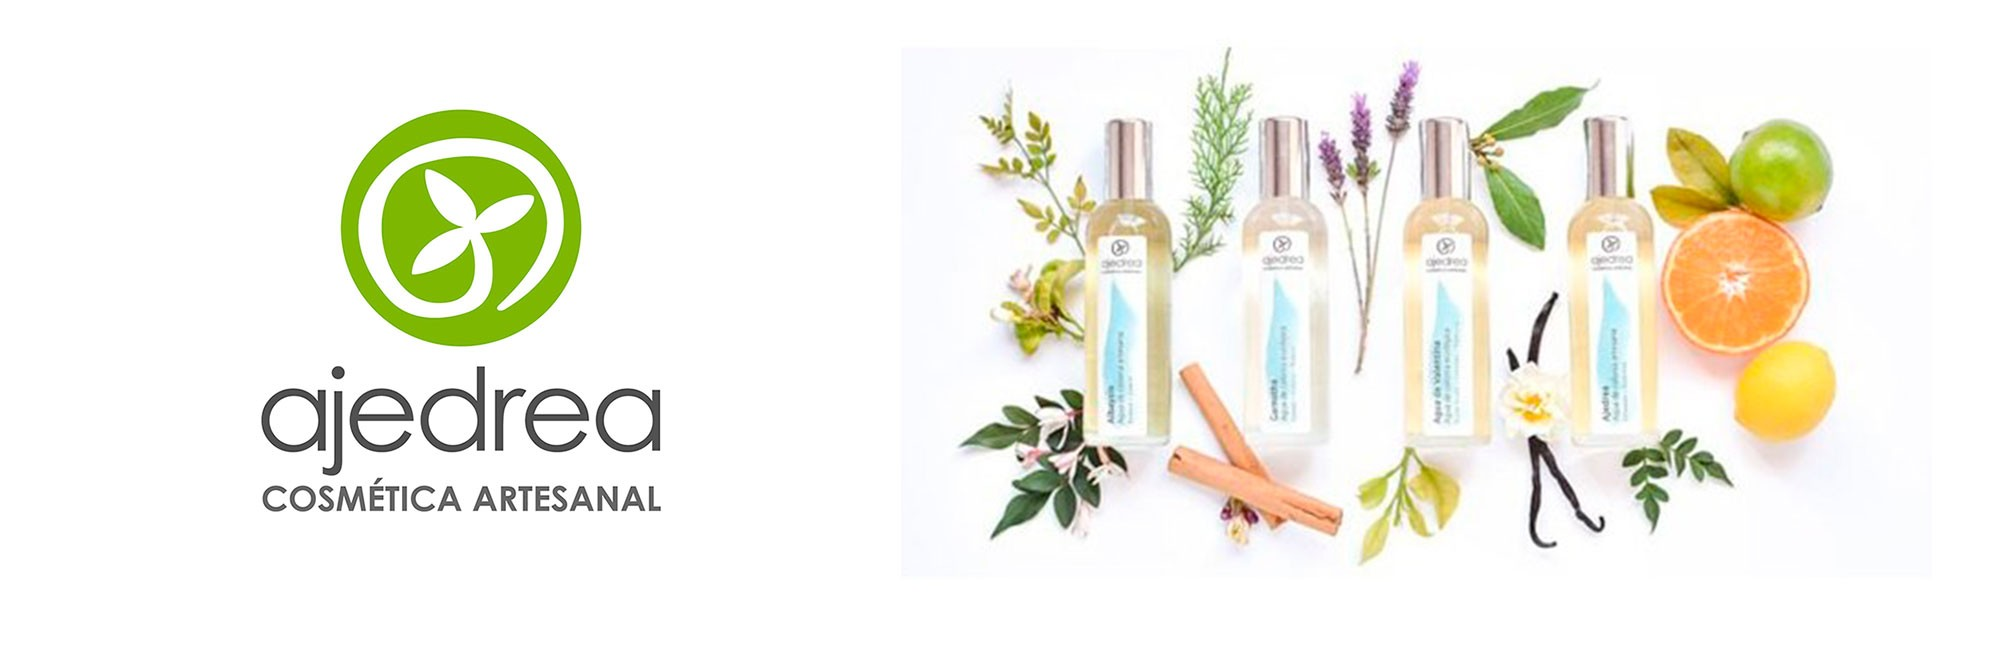 Ajedrea-cosmetica-perfumes-naturales